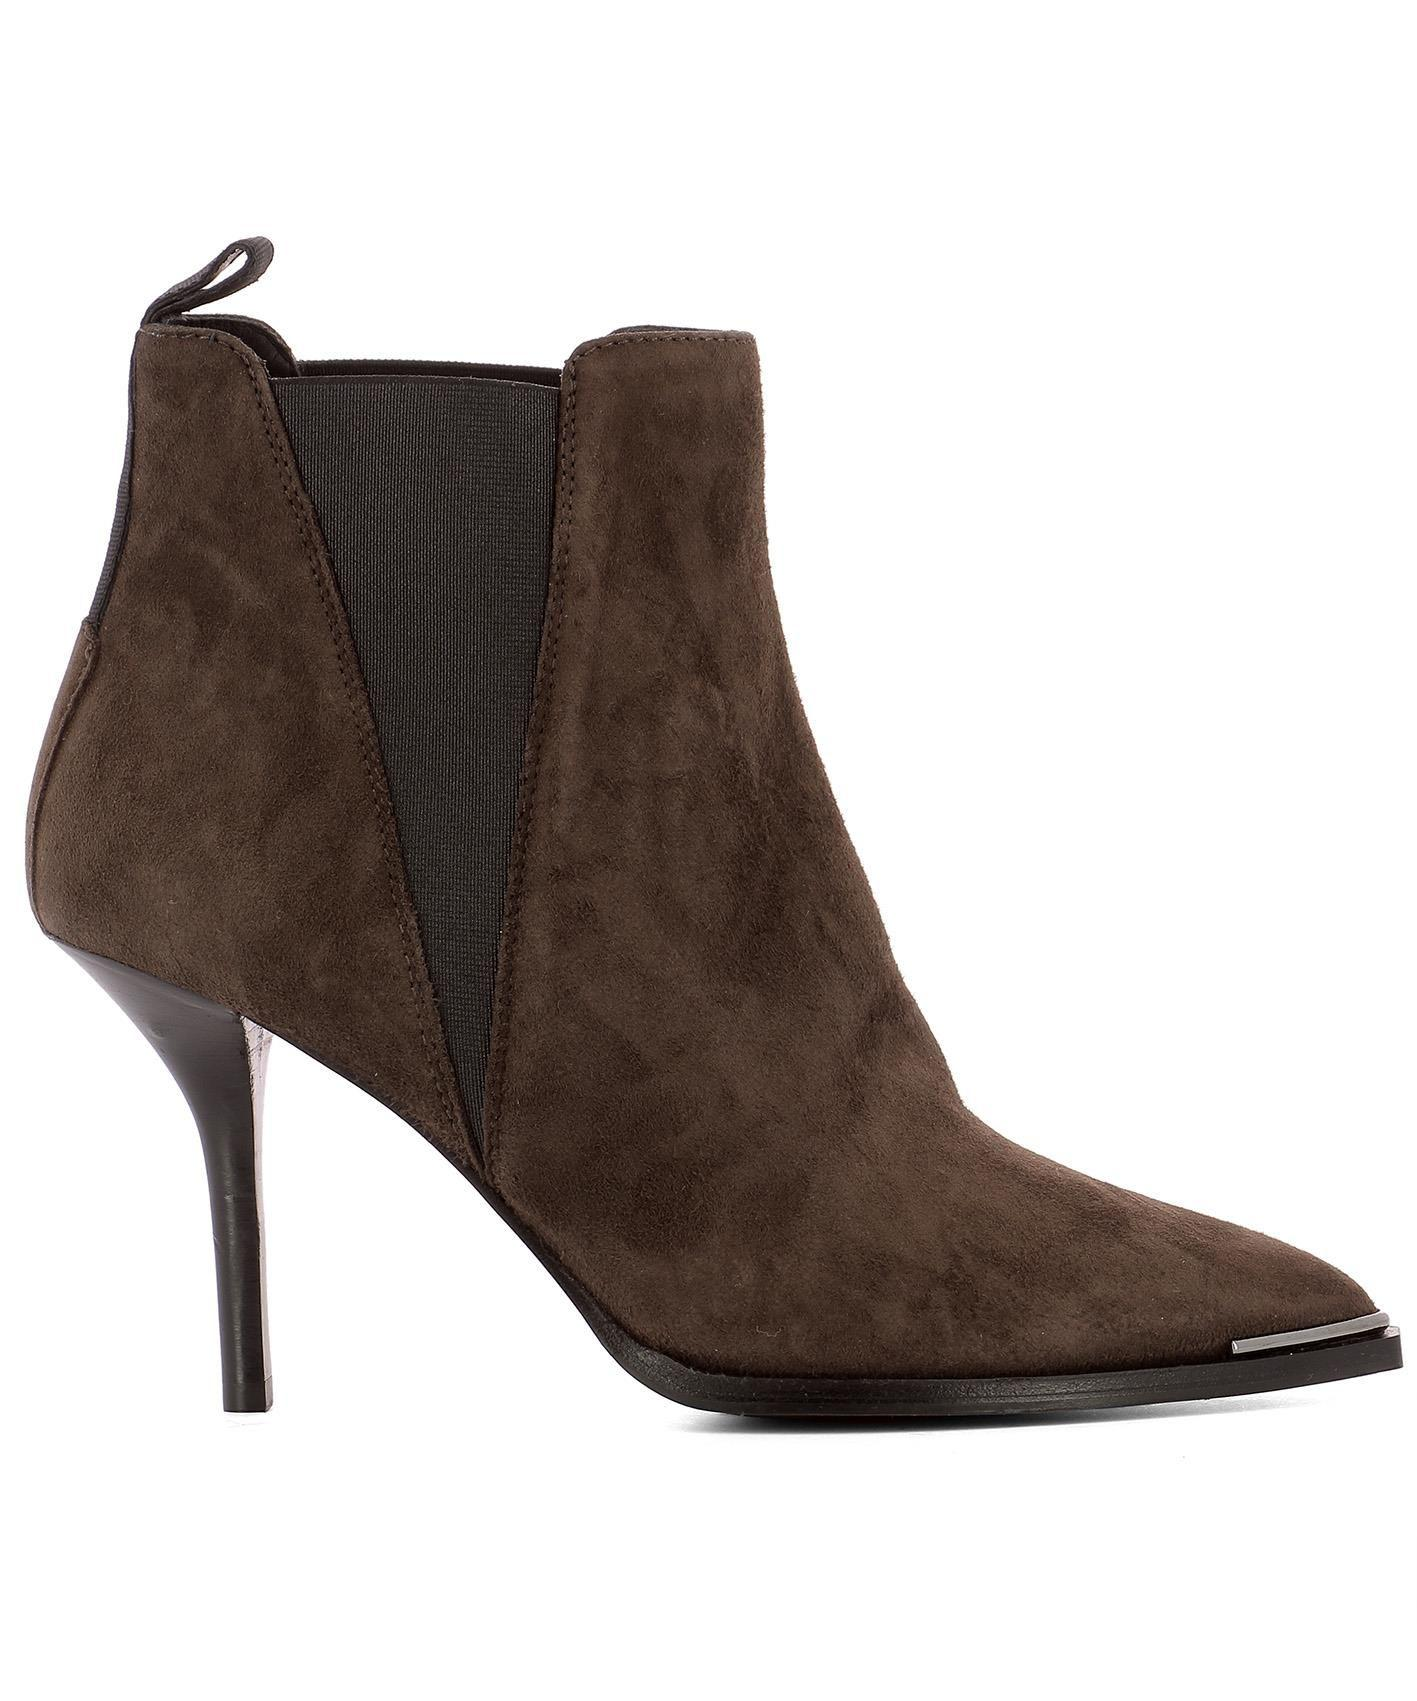 fb15601d5522 Lyst - Acne Women s Brown Suede Ankle Boots in Brown